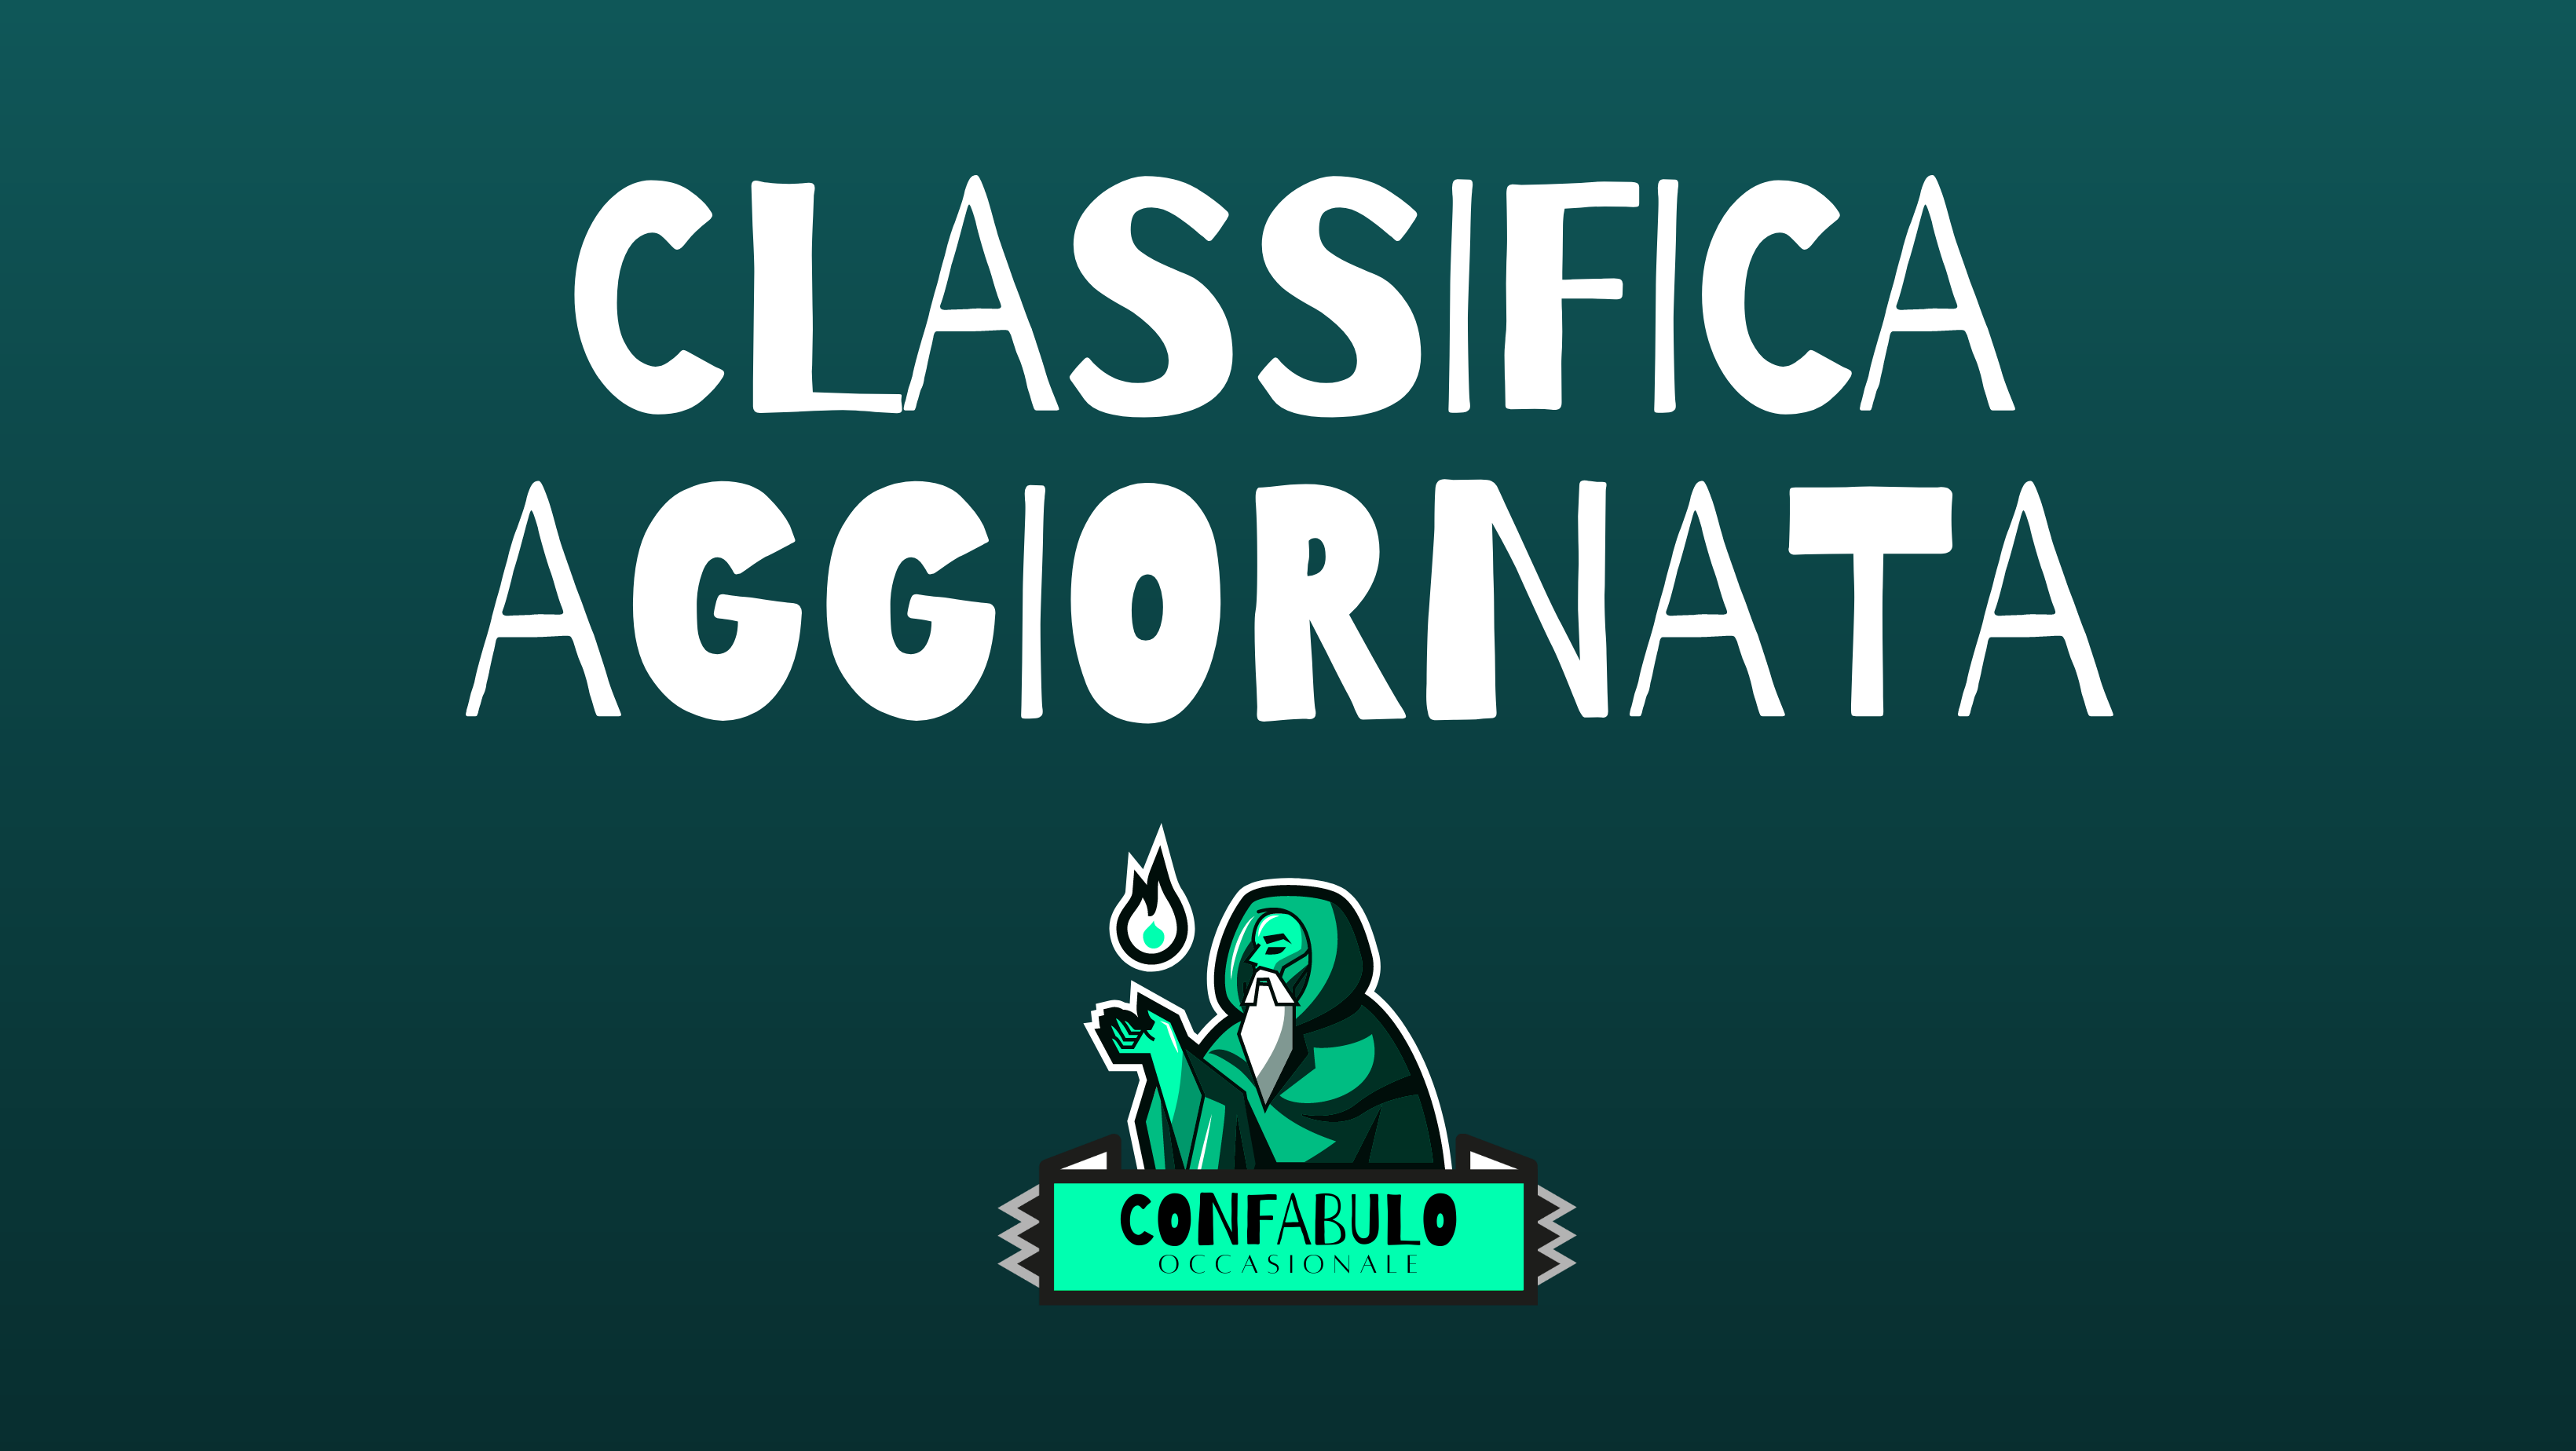 Confabulo Occasionale G1G4